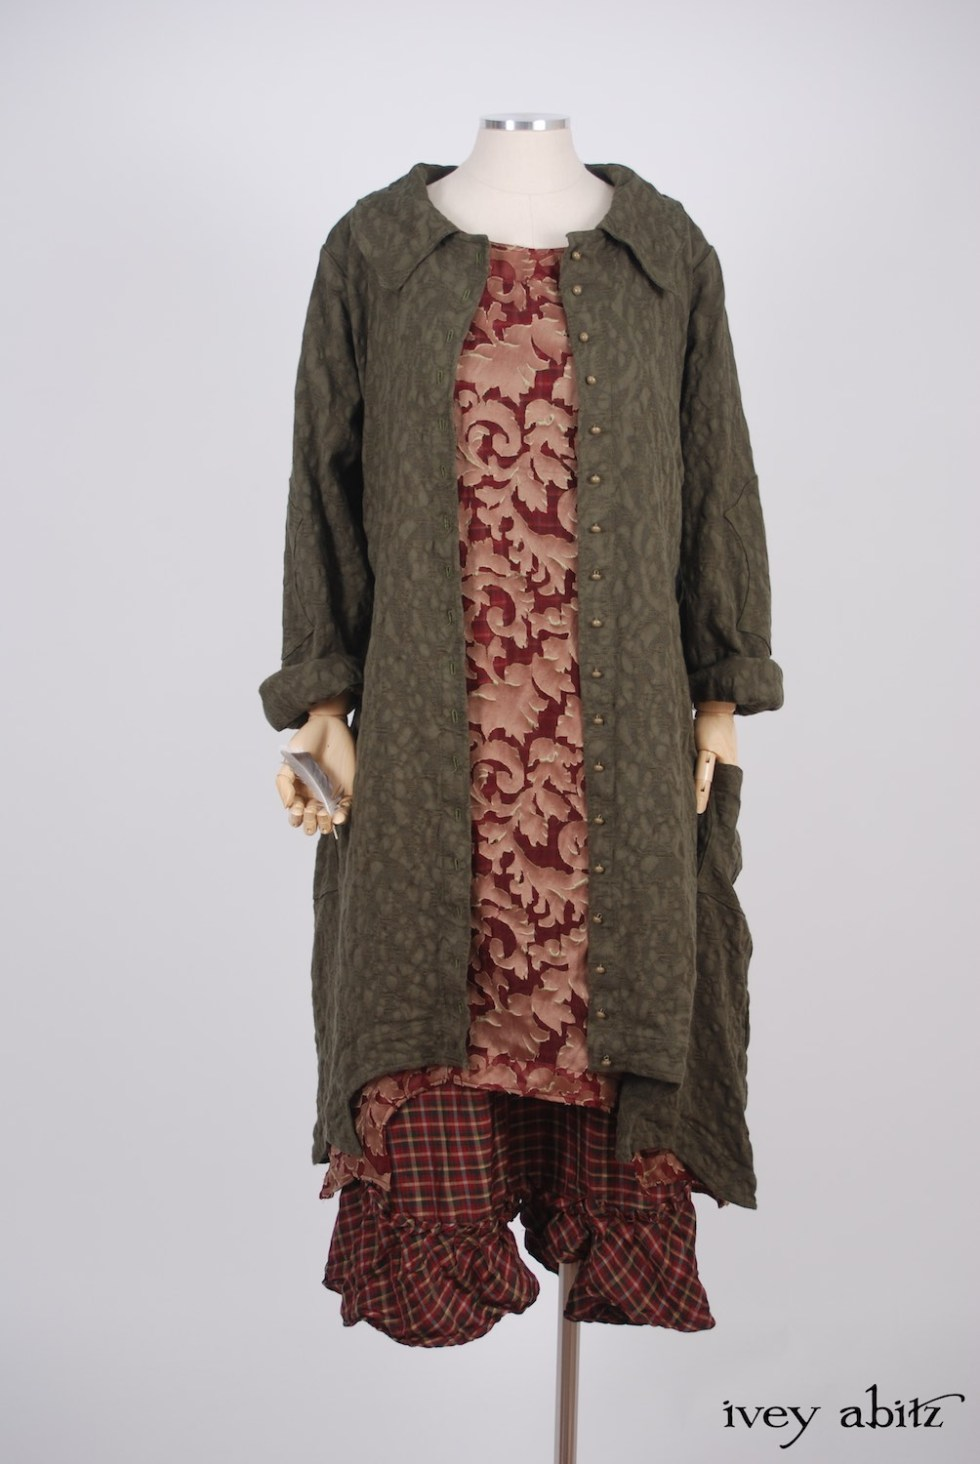 Ivey Abitz - Chittister Duster Coat in Morning Meadow Hemstitch Jacquard  - Chittister Frock in Peony Silk Organza  - Tilbrook Frock in Peony Washed Plaid Silk, High Water Length